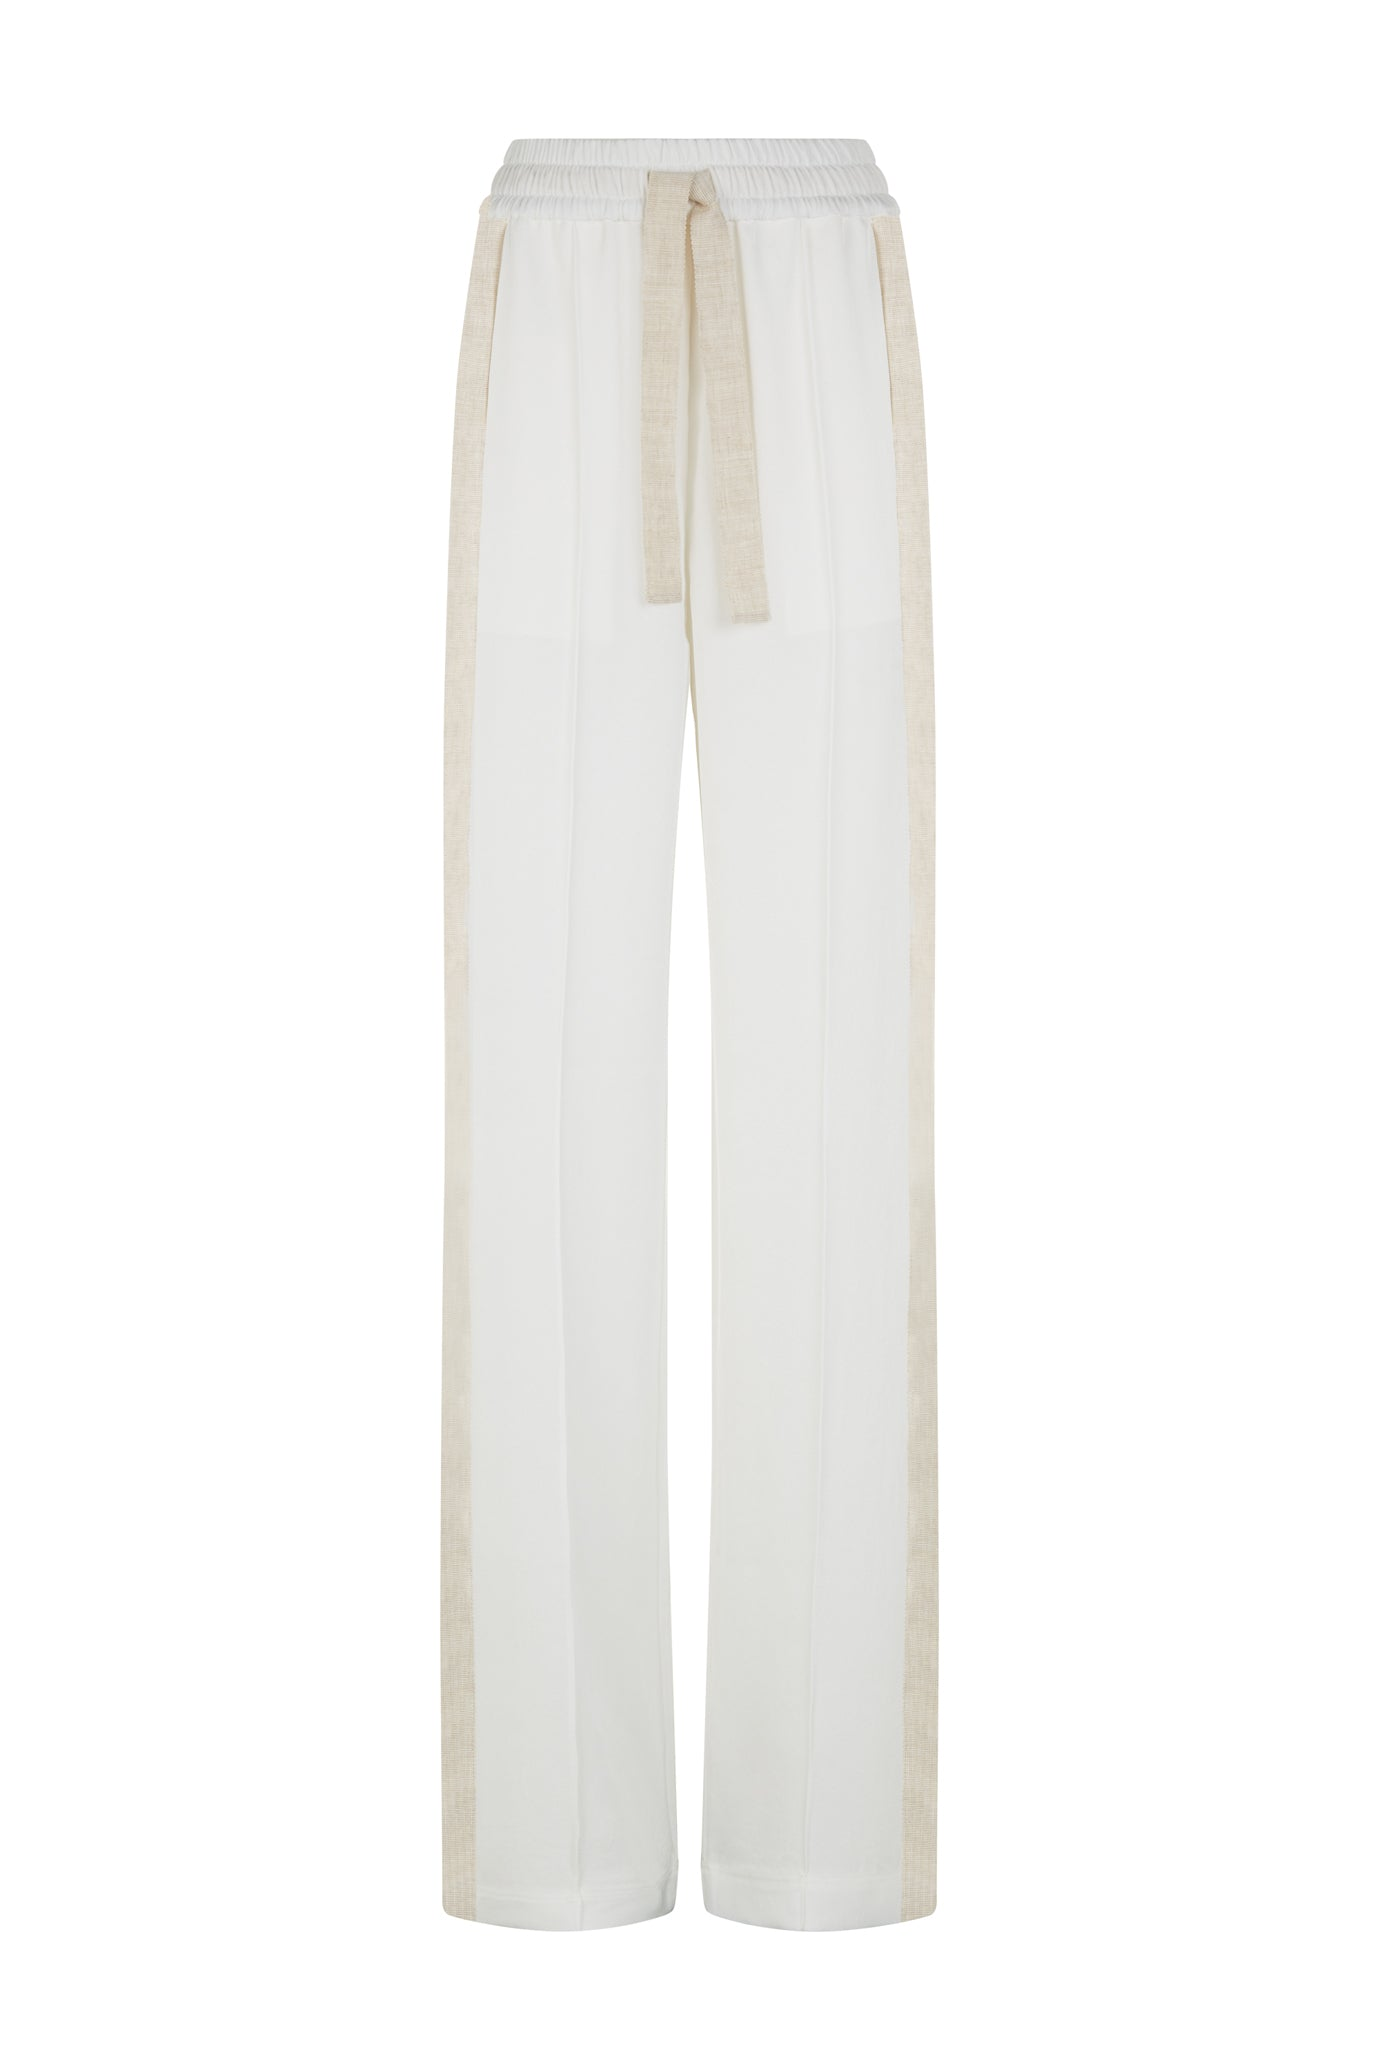 The classic wide leg jogger white natural fabric